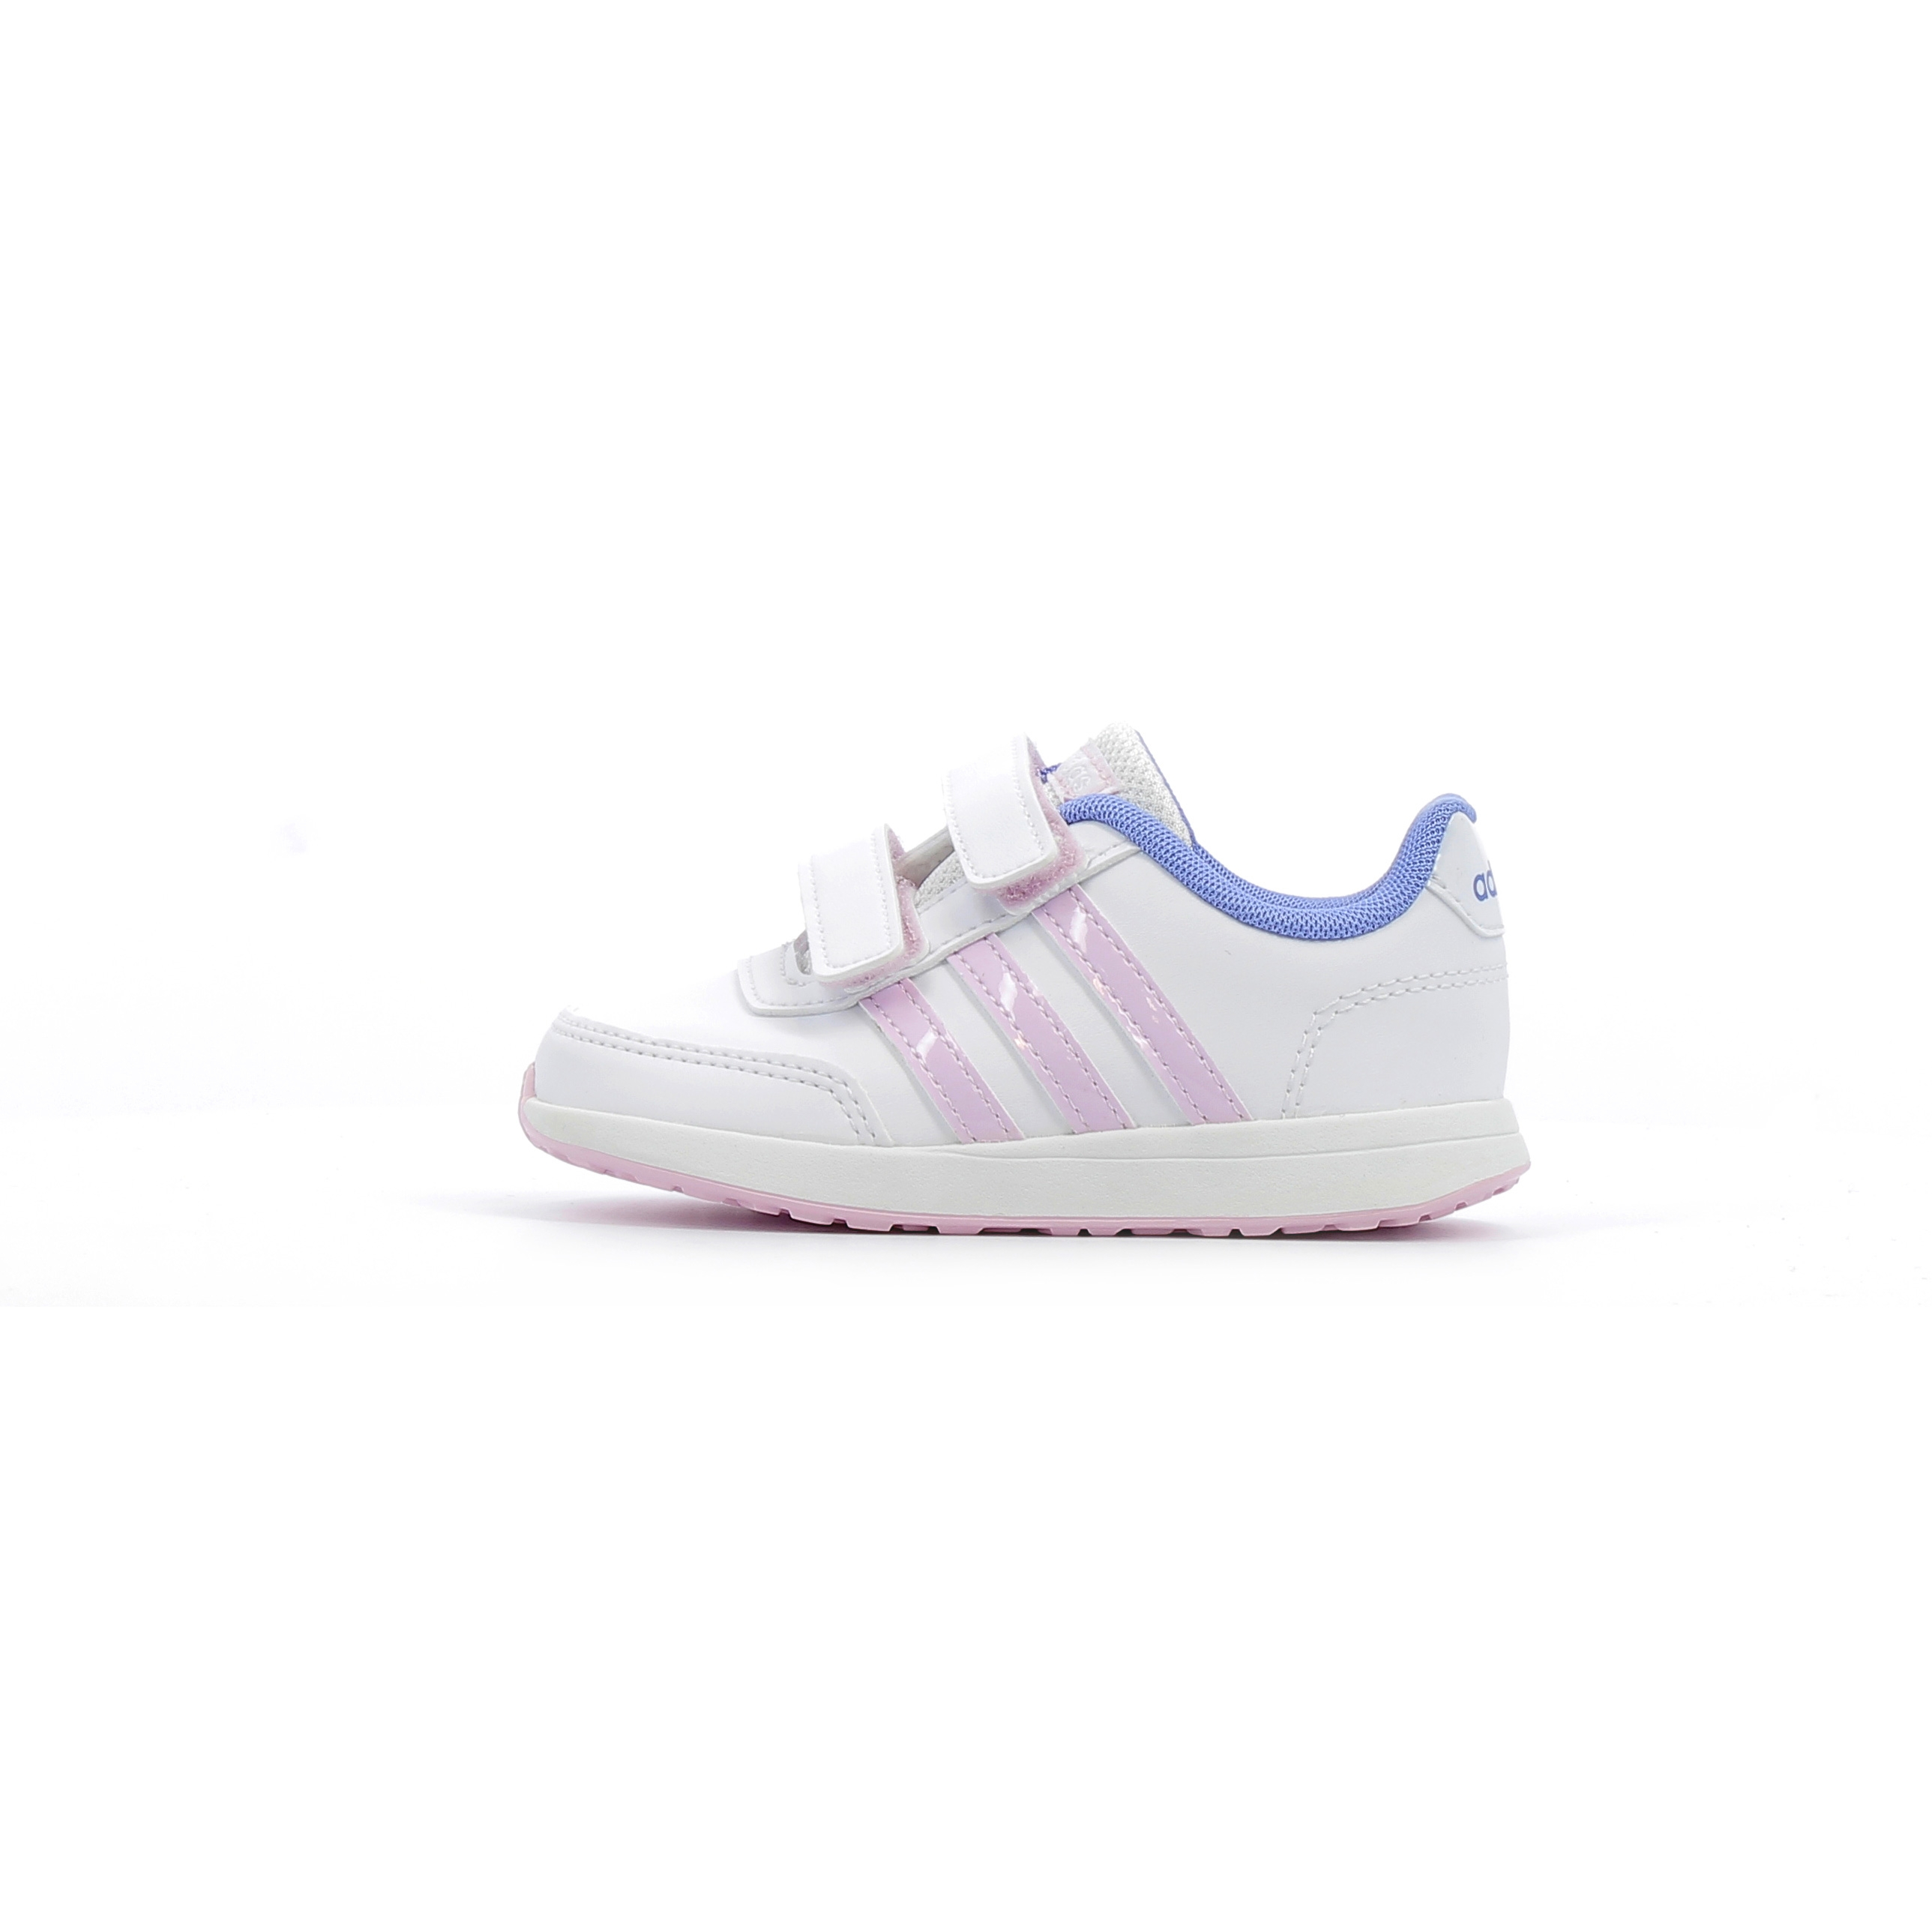 Performance Switch Cmf Inf 2 Adidas Chaussures Vs Enfant zMqpGSUV